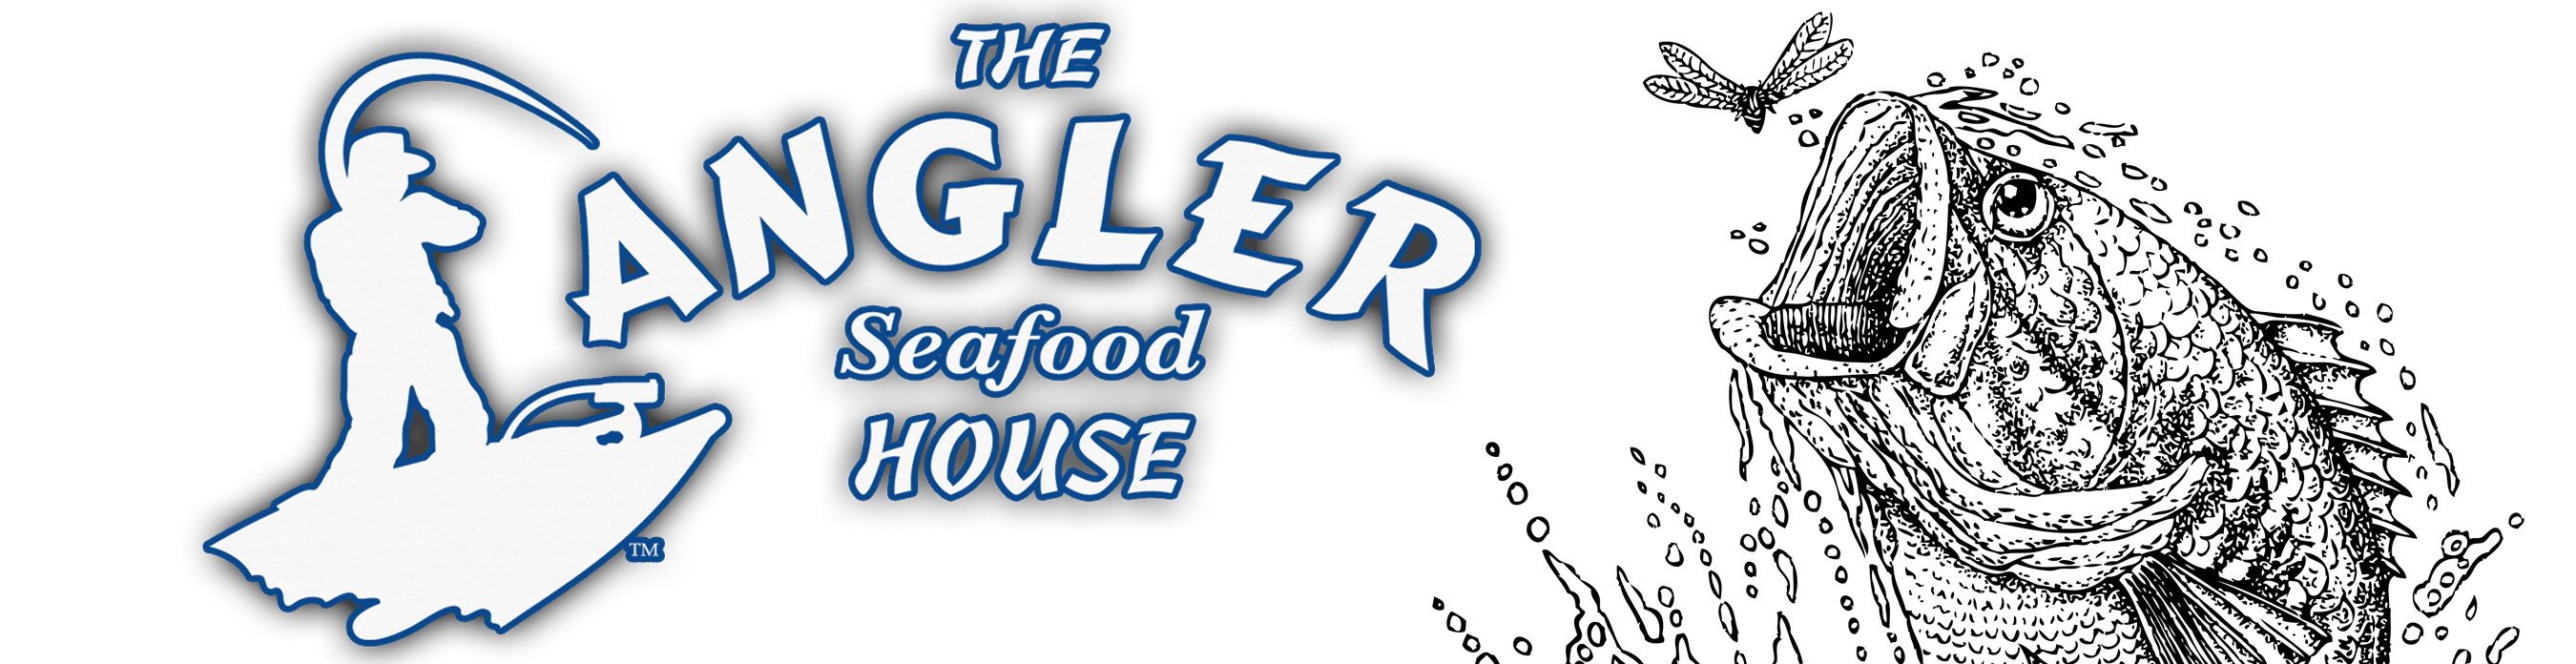 The Angler Seafood House